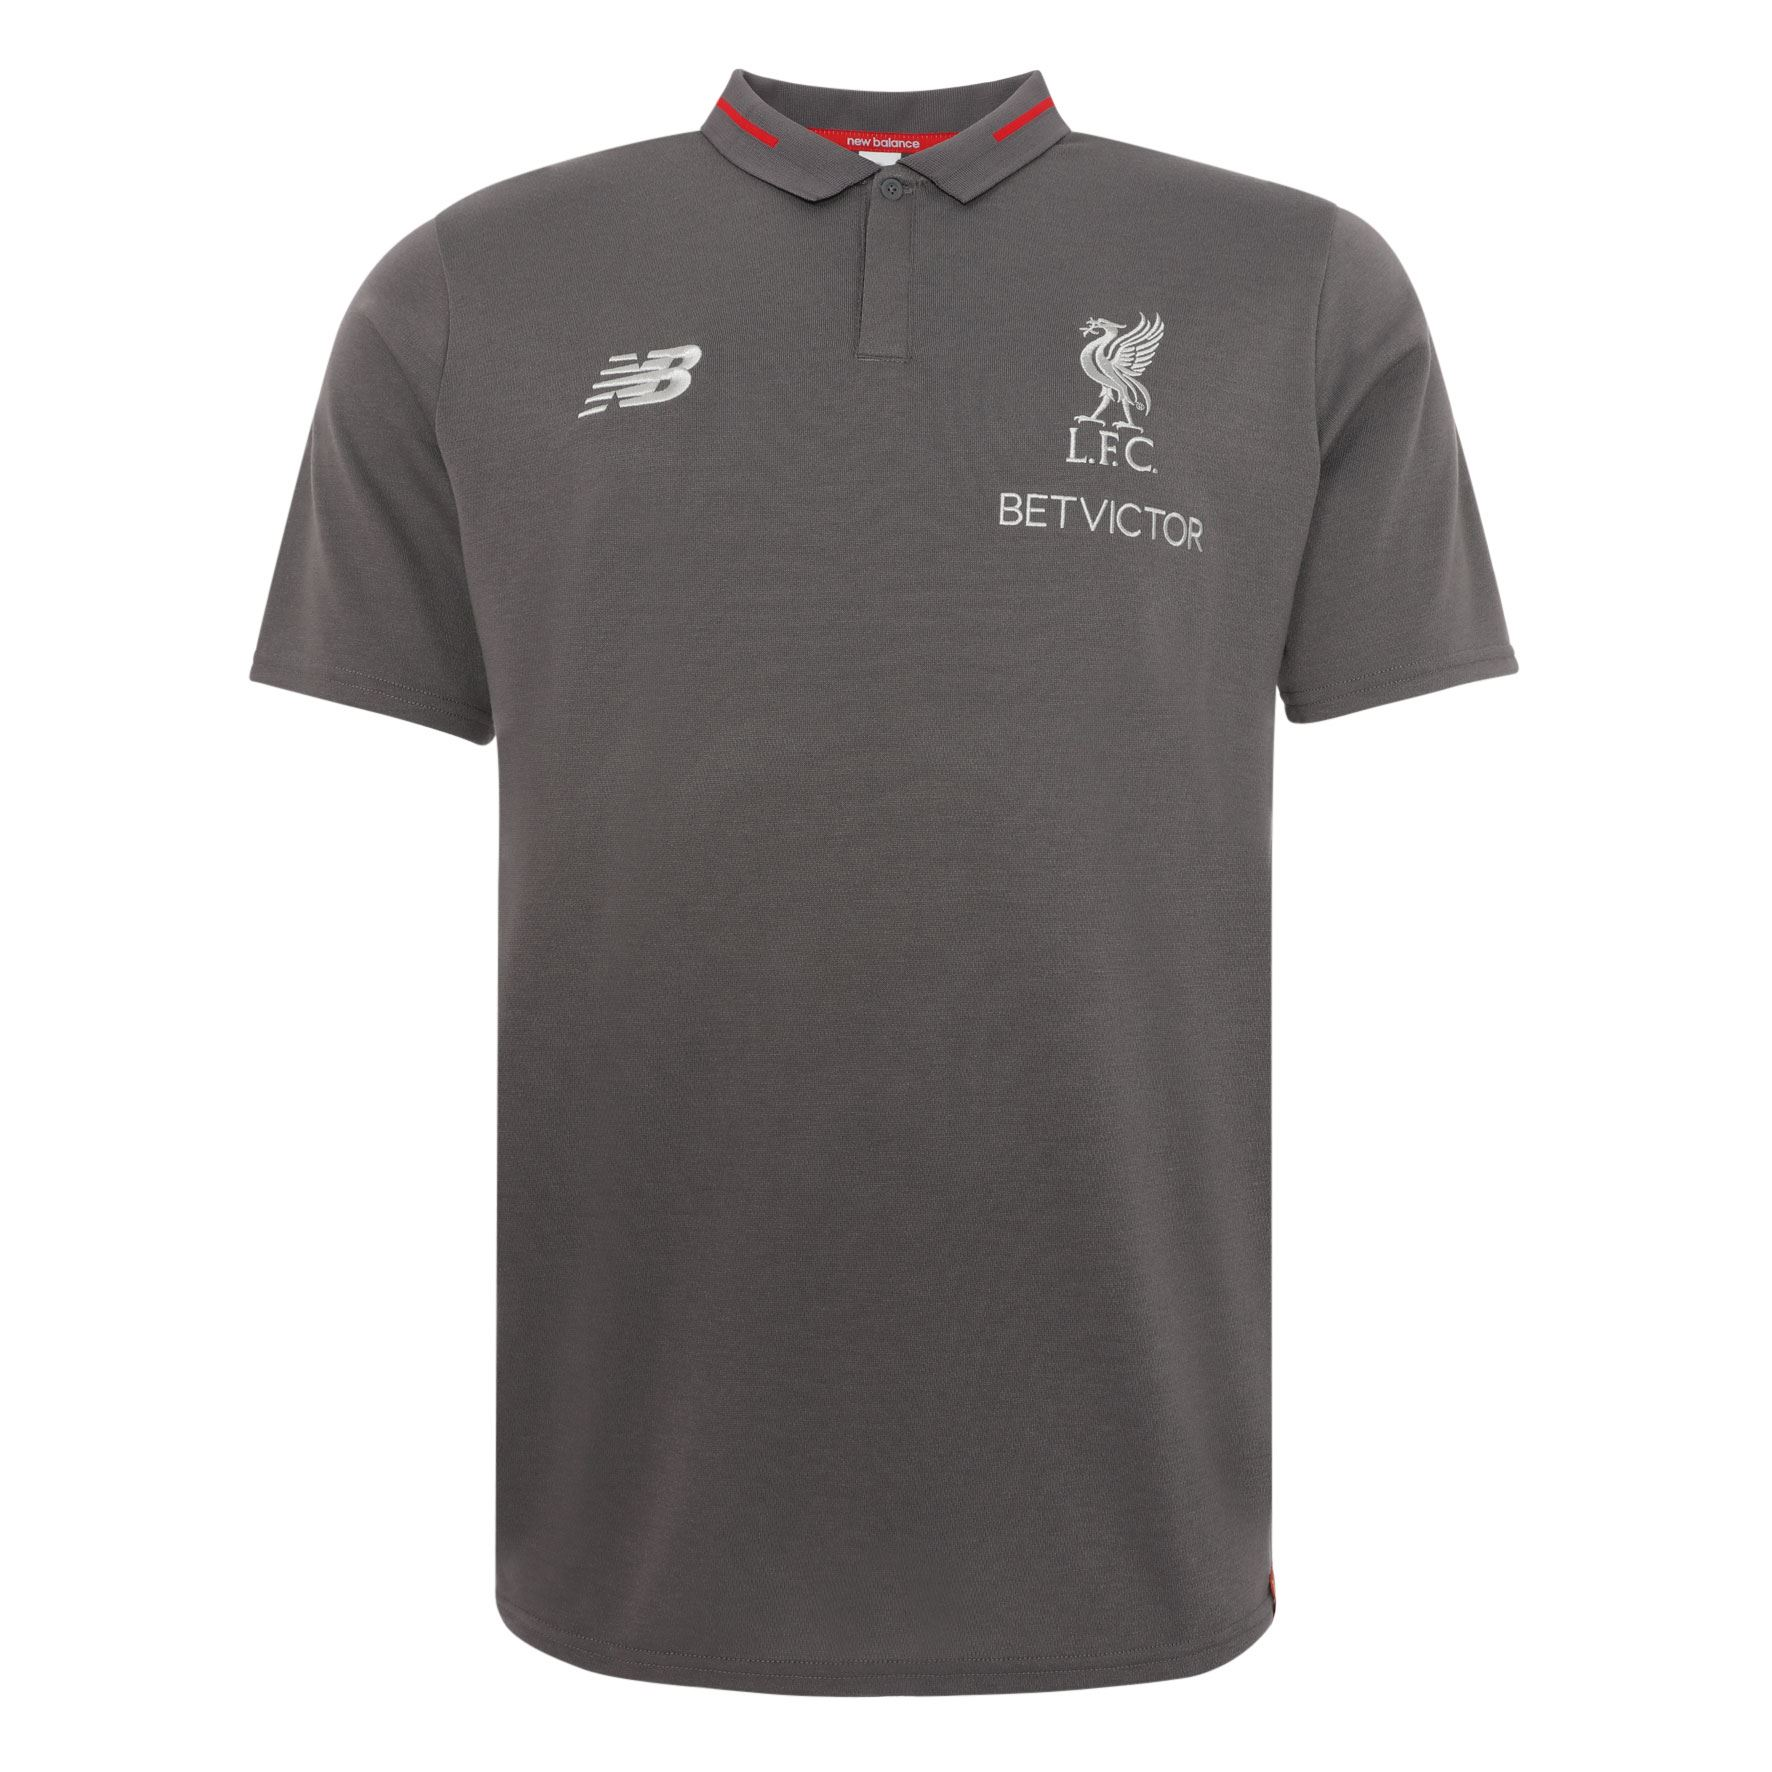 1940d22d1 Details about Liverpool FC Grey Mens Football Polo Shirt Leisure Essential  18/19 LFC Official